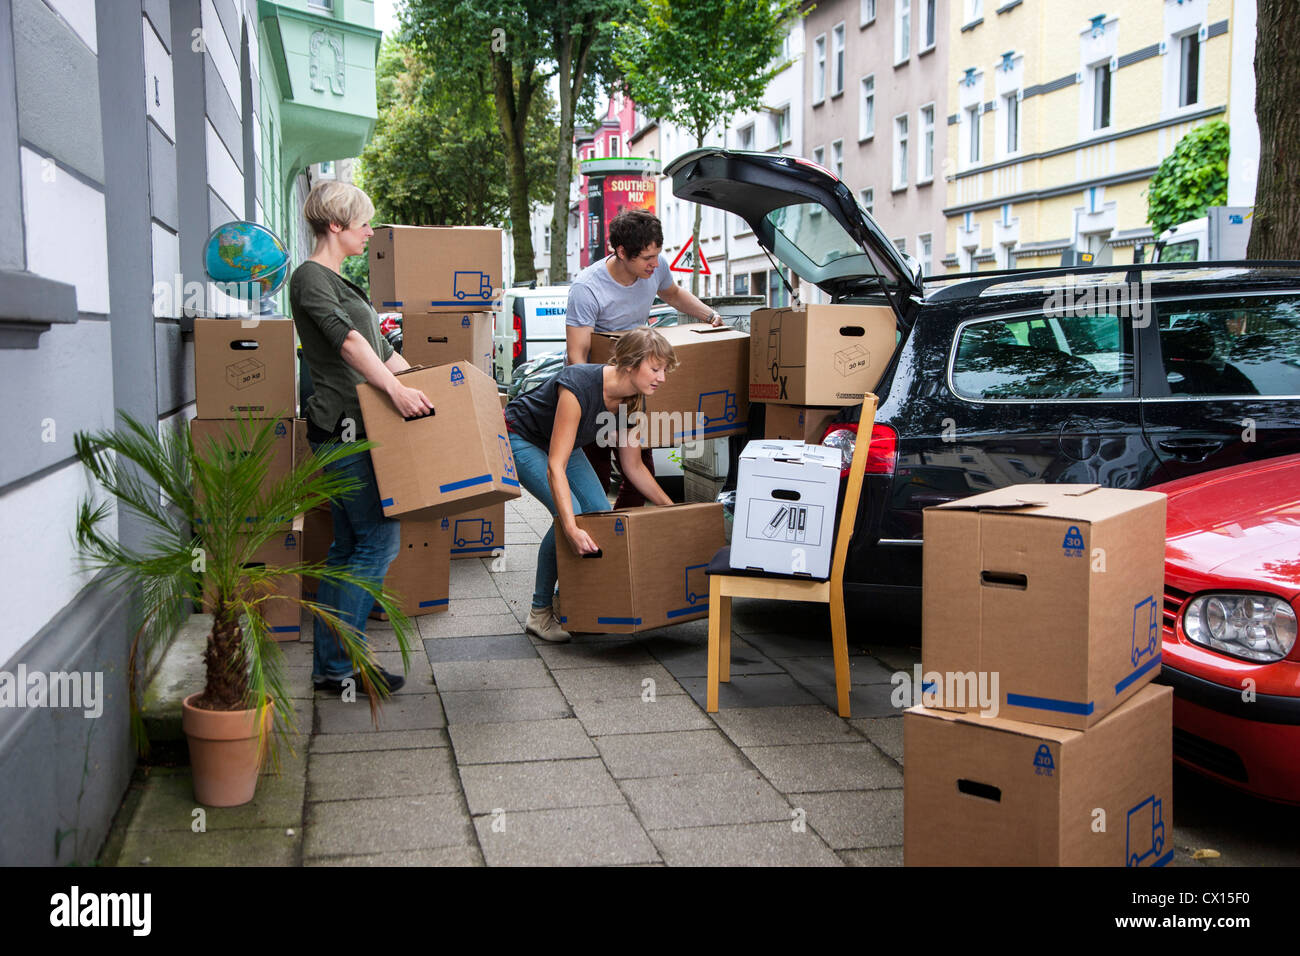 moving into a new apartment friends help carrying moving boxes stock photo 50428084 alamy. Black Bedroom Furniture Sets. Home Design Ideas